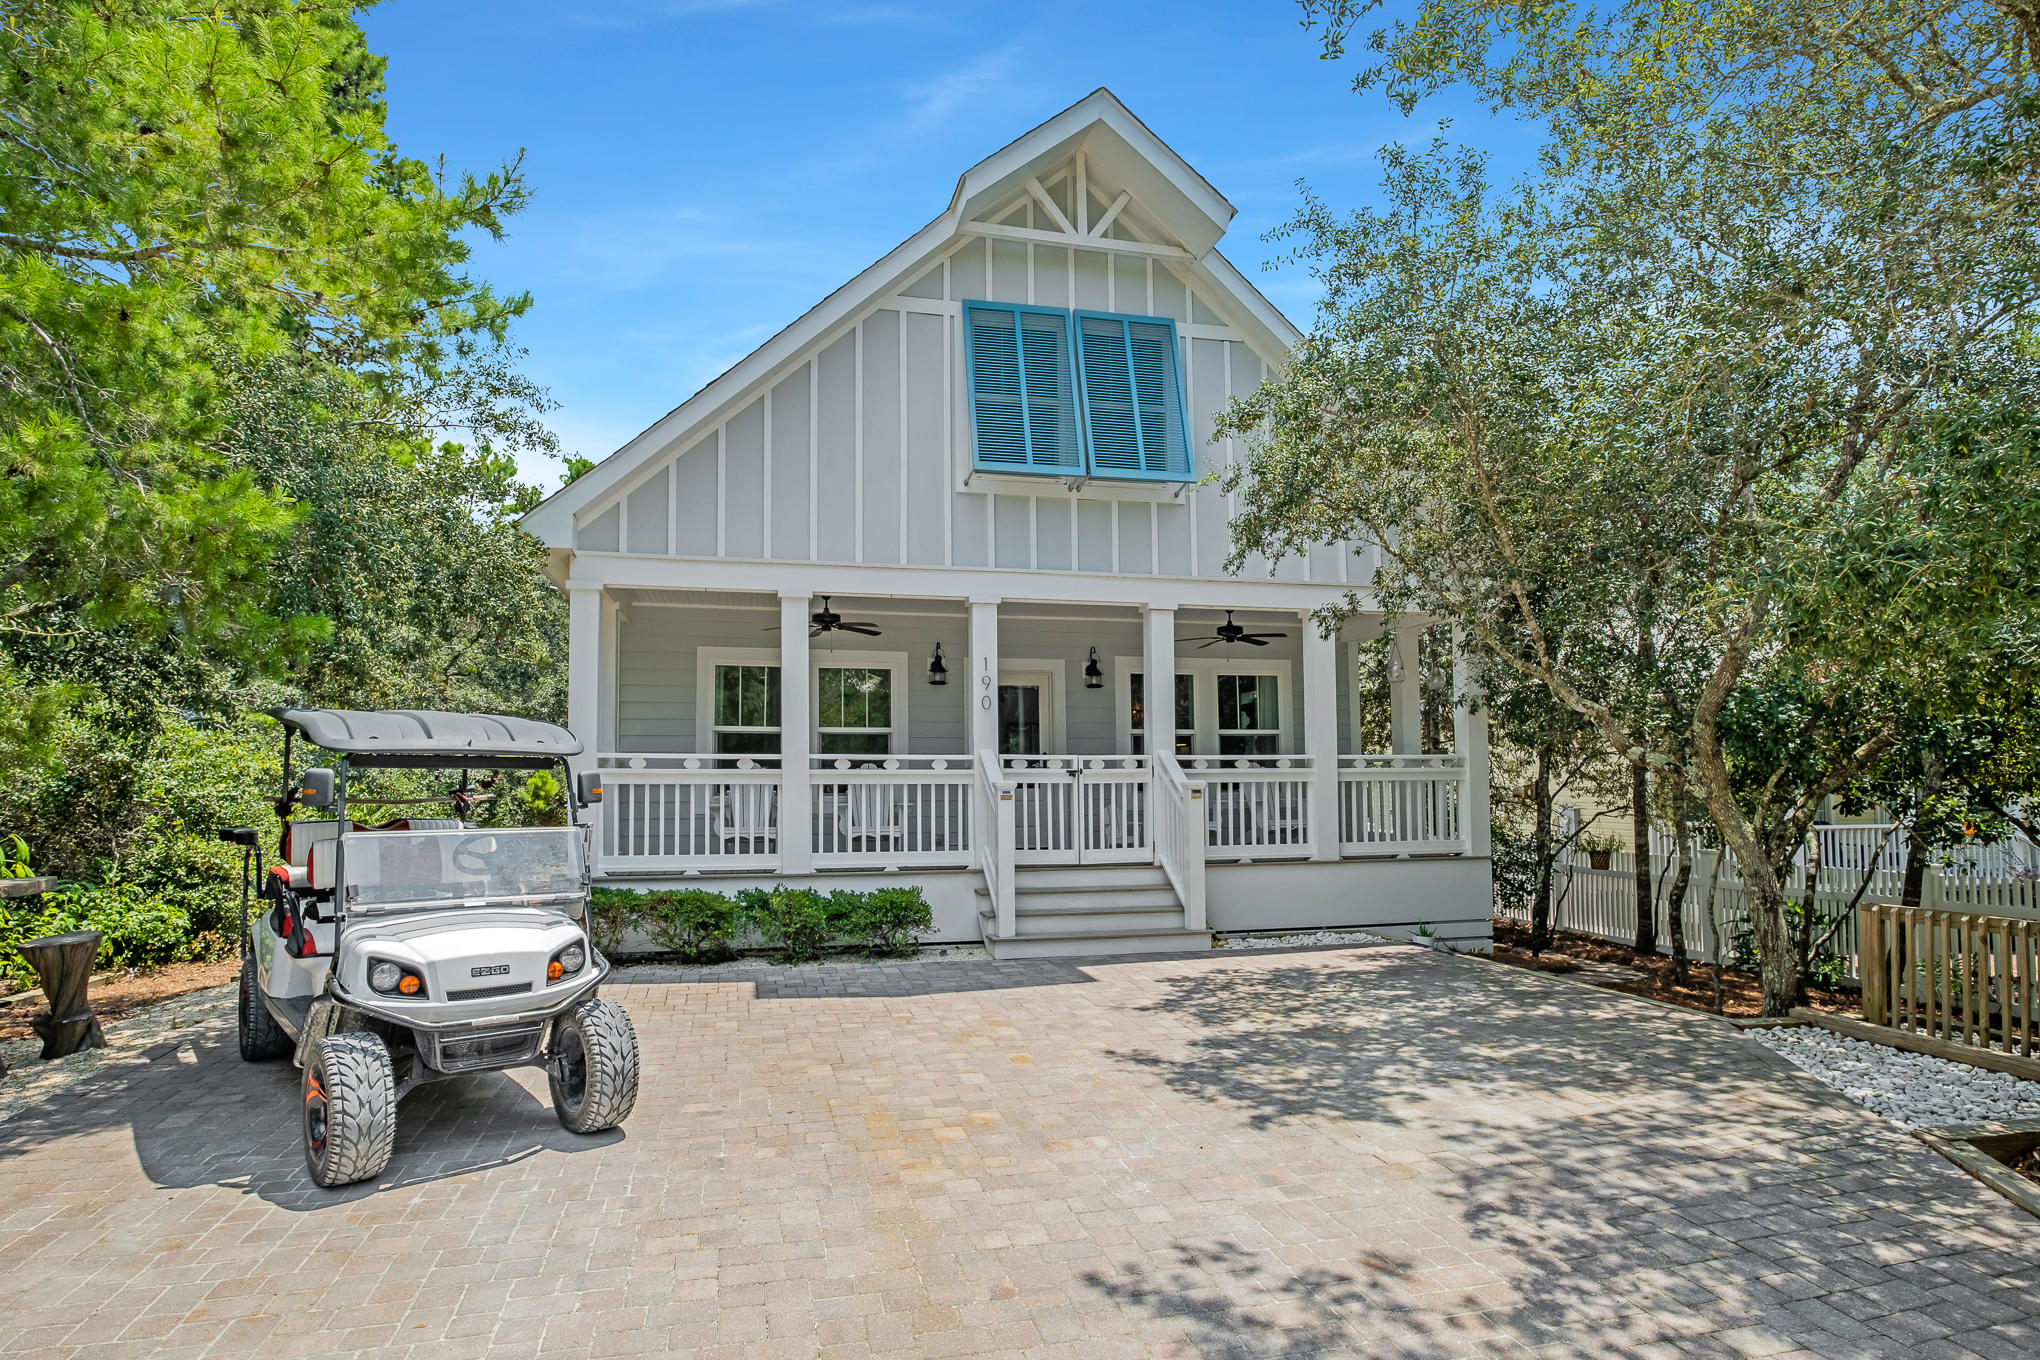 Perfectly positioned South of 30A, this quintessential beach house resides in Seagrove Beach minutes away from the white sugar sand beaches and all of the iconic town centers found along 30A. Constructed in 2015, the like-new residence encompasses over 2,100 square feet of thoughtfully designed living space spanning two levels. Upon initial approach, the deep front porch leads into the living and dining areas adorned with shiplap accents, beamed ceilings, and oak flooring. The coastal flair is carried through the Chef's kitchen complete with a luxury appliance suite, ample cabinetry, and a built-in nugget ice maker. Synonymous with relaxation, the backyard oasis with heated pool is bordered with lush vegetation and towering bamboo providing the utmost privacy. Overflowing with natural light, the oversized first-floor main suite boasts a shiplap accent wall and ensuite with antiqued vanity, water closet, custom tiled shower, soaking tub, and large walk-in closet. An additional bedroom, full bathroom, laundry room, and mudroom are also found on the first level.   Currently configured as a bunk area with sleeping accommodations for four, the second level common area provides access to the two additional bedrooms and bathroom suite with dual sink and water closet configuration.  Poised less than 0.3 miles away, the nearby Eastern Lake Neighborhood Beach Access overlooks the rare Coastal Dune Lake while providing beachgoers with amenities like a wash-off station, bike rack, and parking accommodations. The pristine condition and turn-key configuration coupled with the impressive rental potential make 190 Dalton Drive a compelling opportunity for investors and full-time residents alike. Inquire today to start living the coastal lifestyle you deserve.